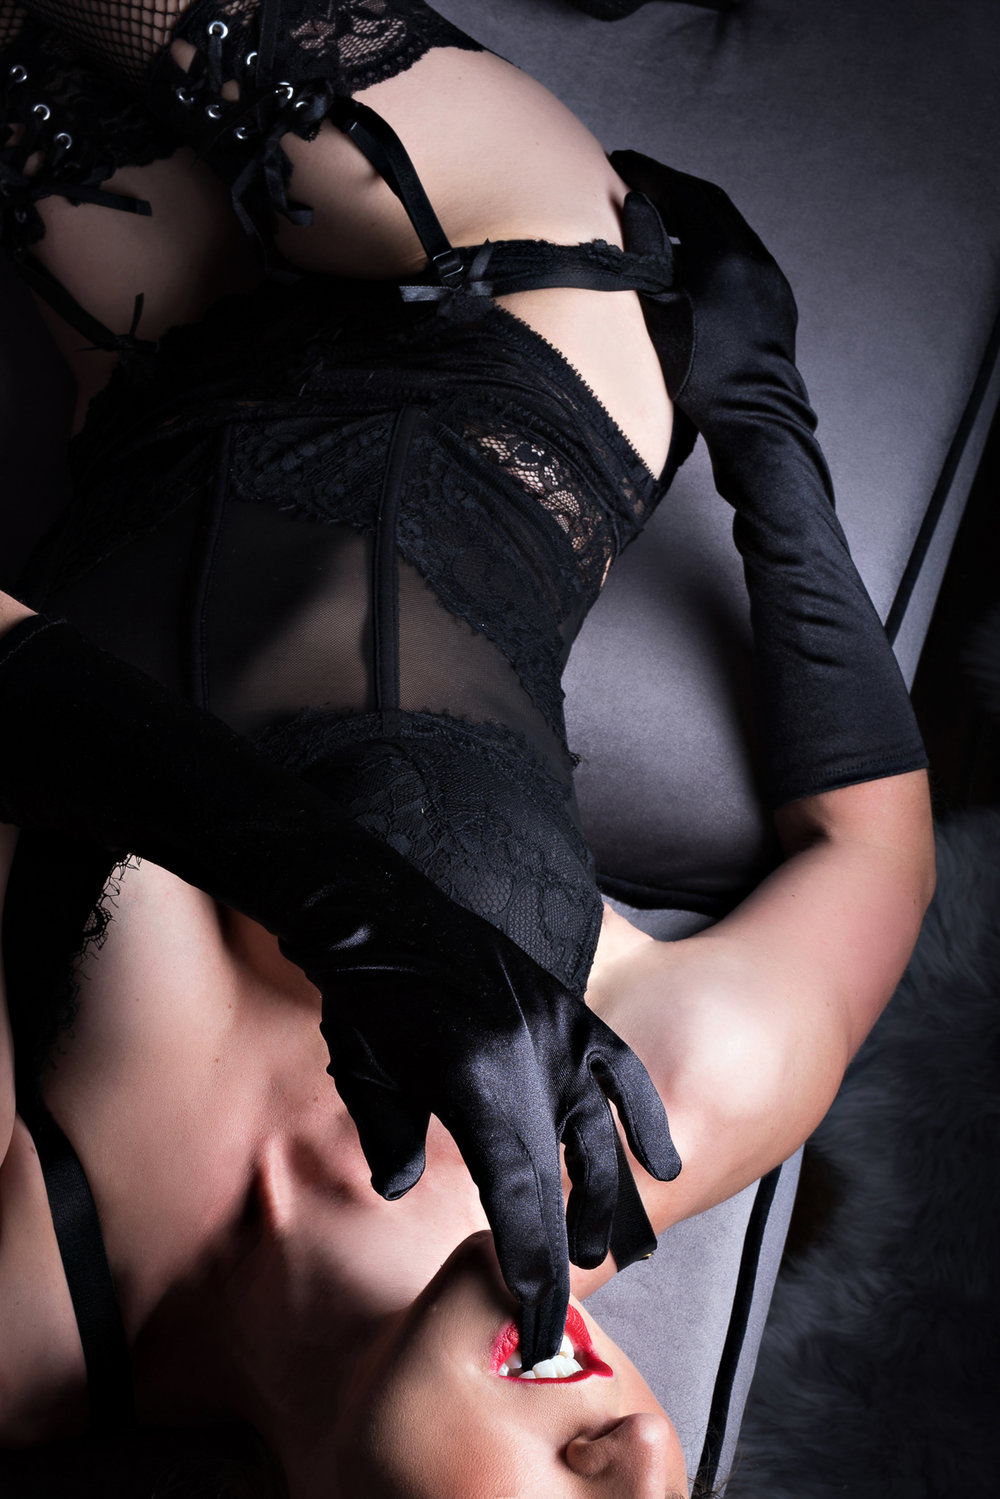 Denver boudoir photo of woman in sexy black lingerie and gloves biting finger seductively